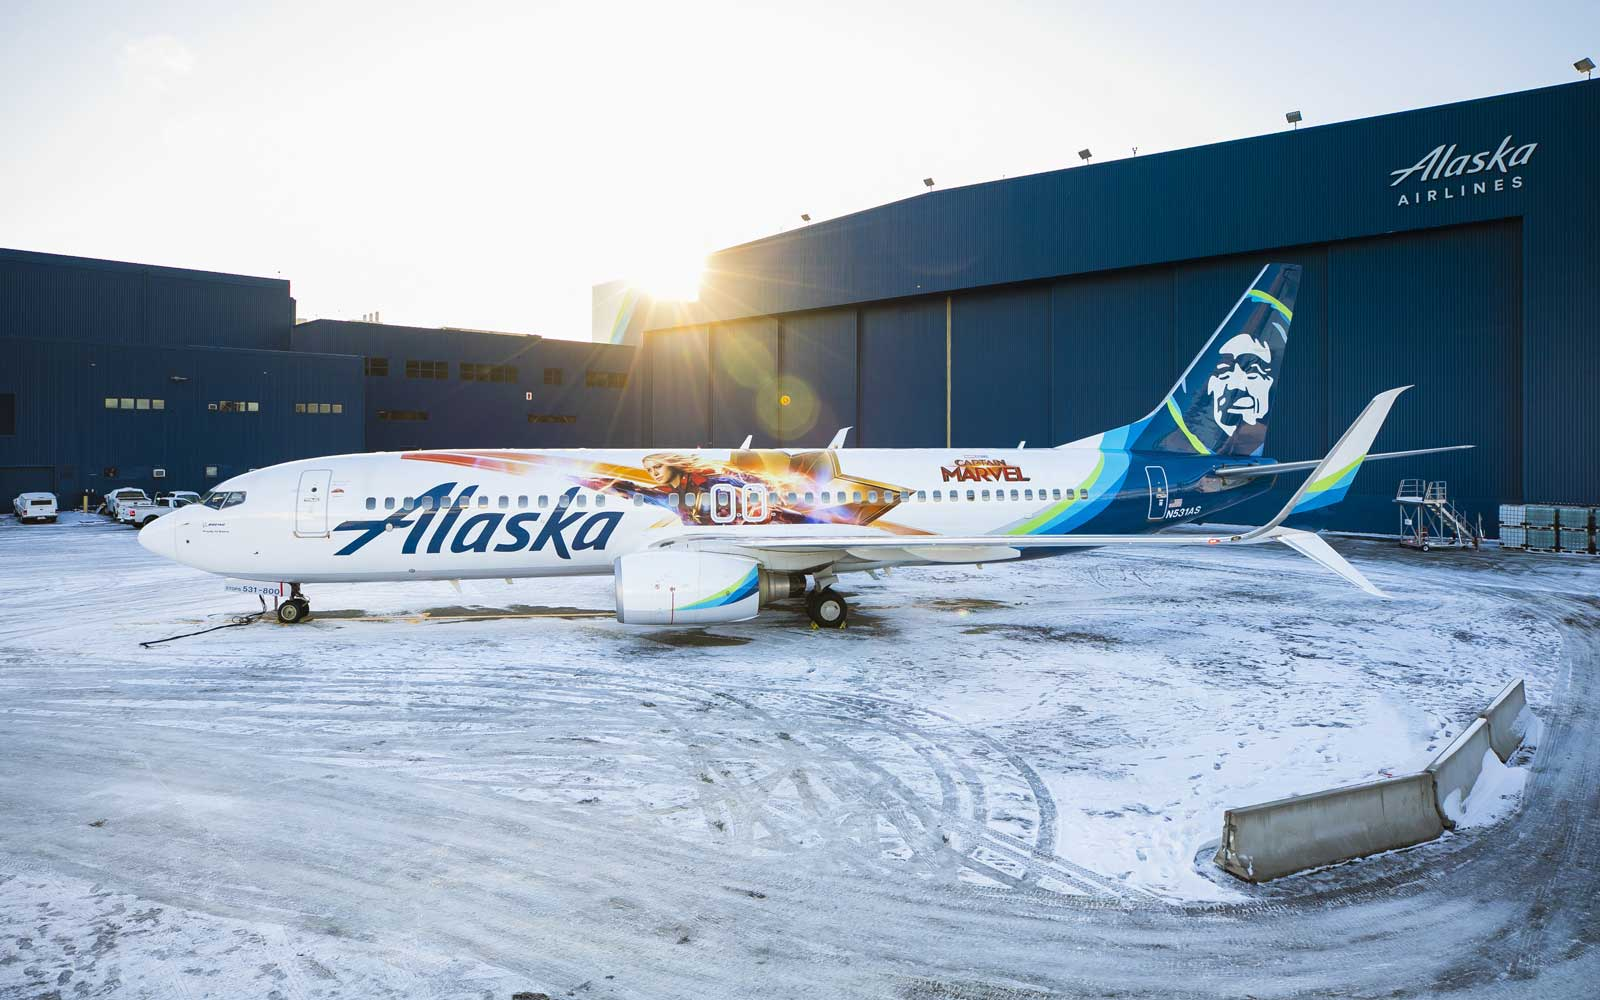 'Captain Marvel' Fans Will Be Obsessed With This New Alaska Airlines Plane